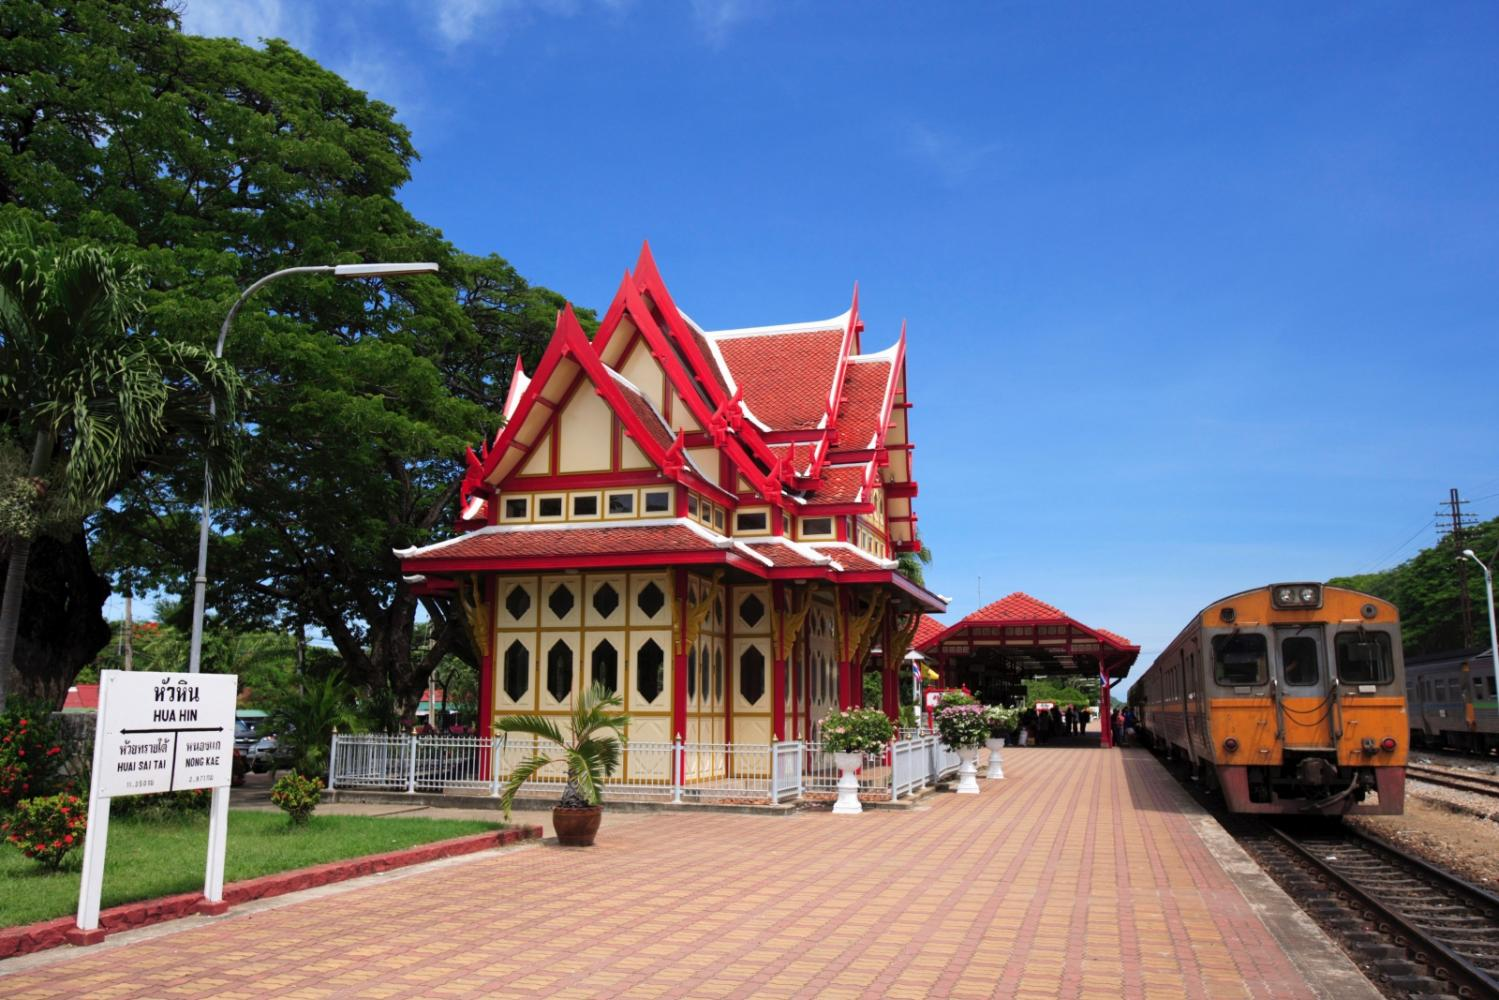 Hua Hin Railway Station in Prachuap Khiri Khan. The area hopes to welcome tourists from Oct 1.